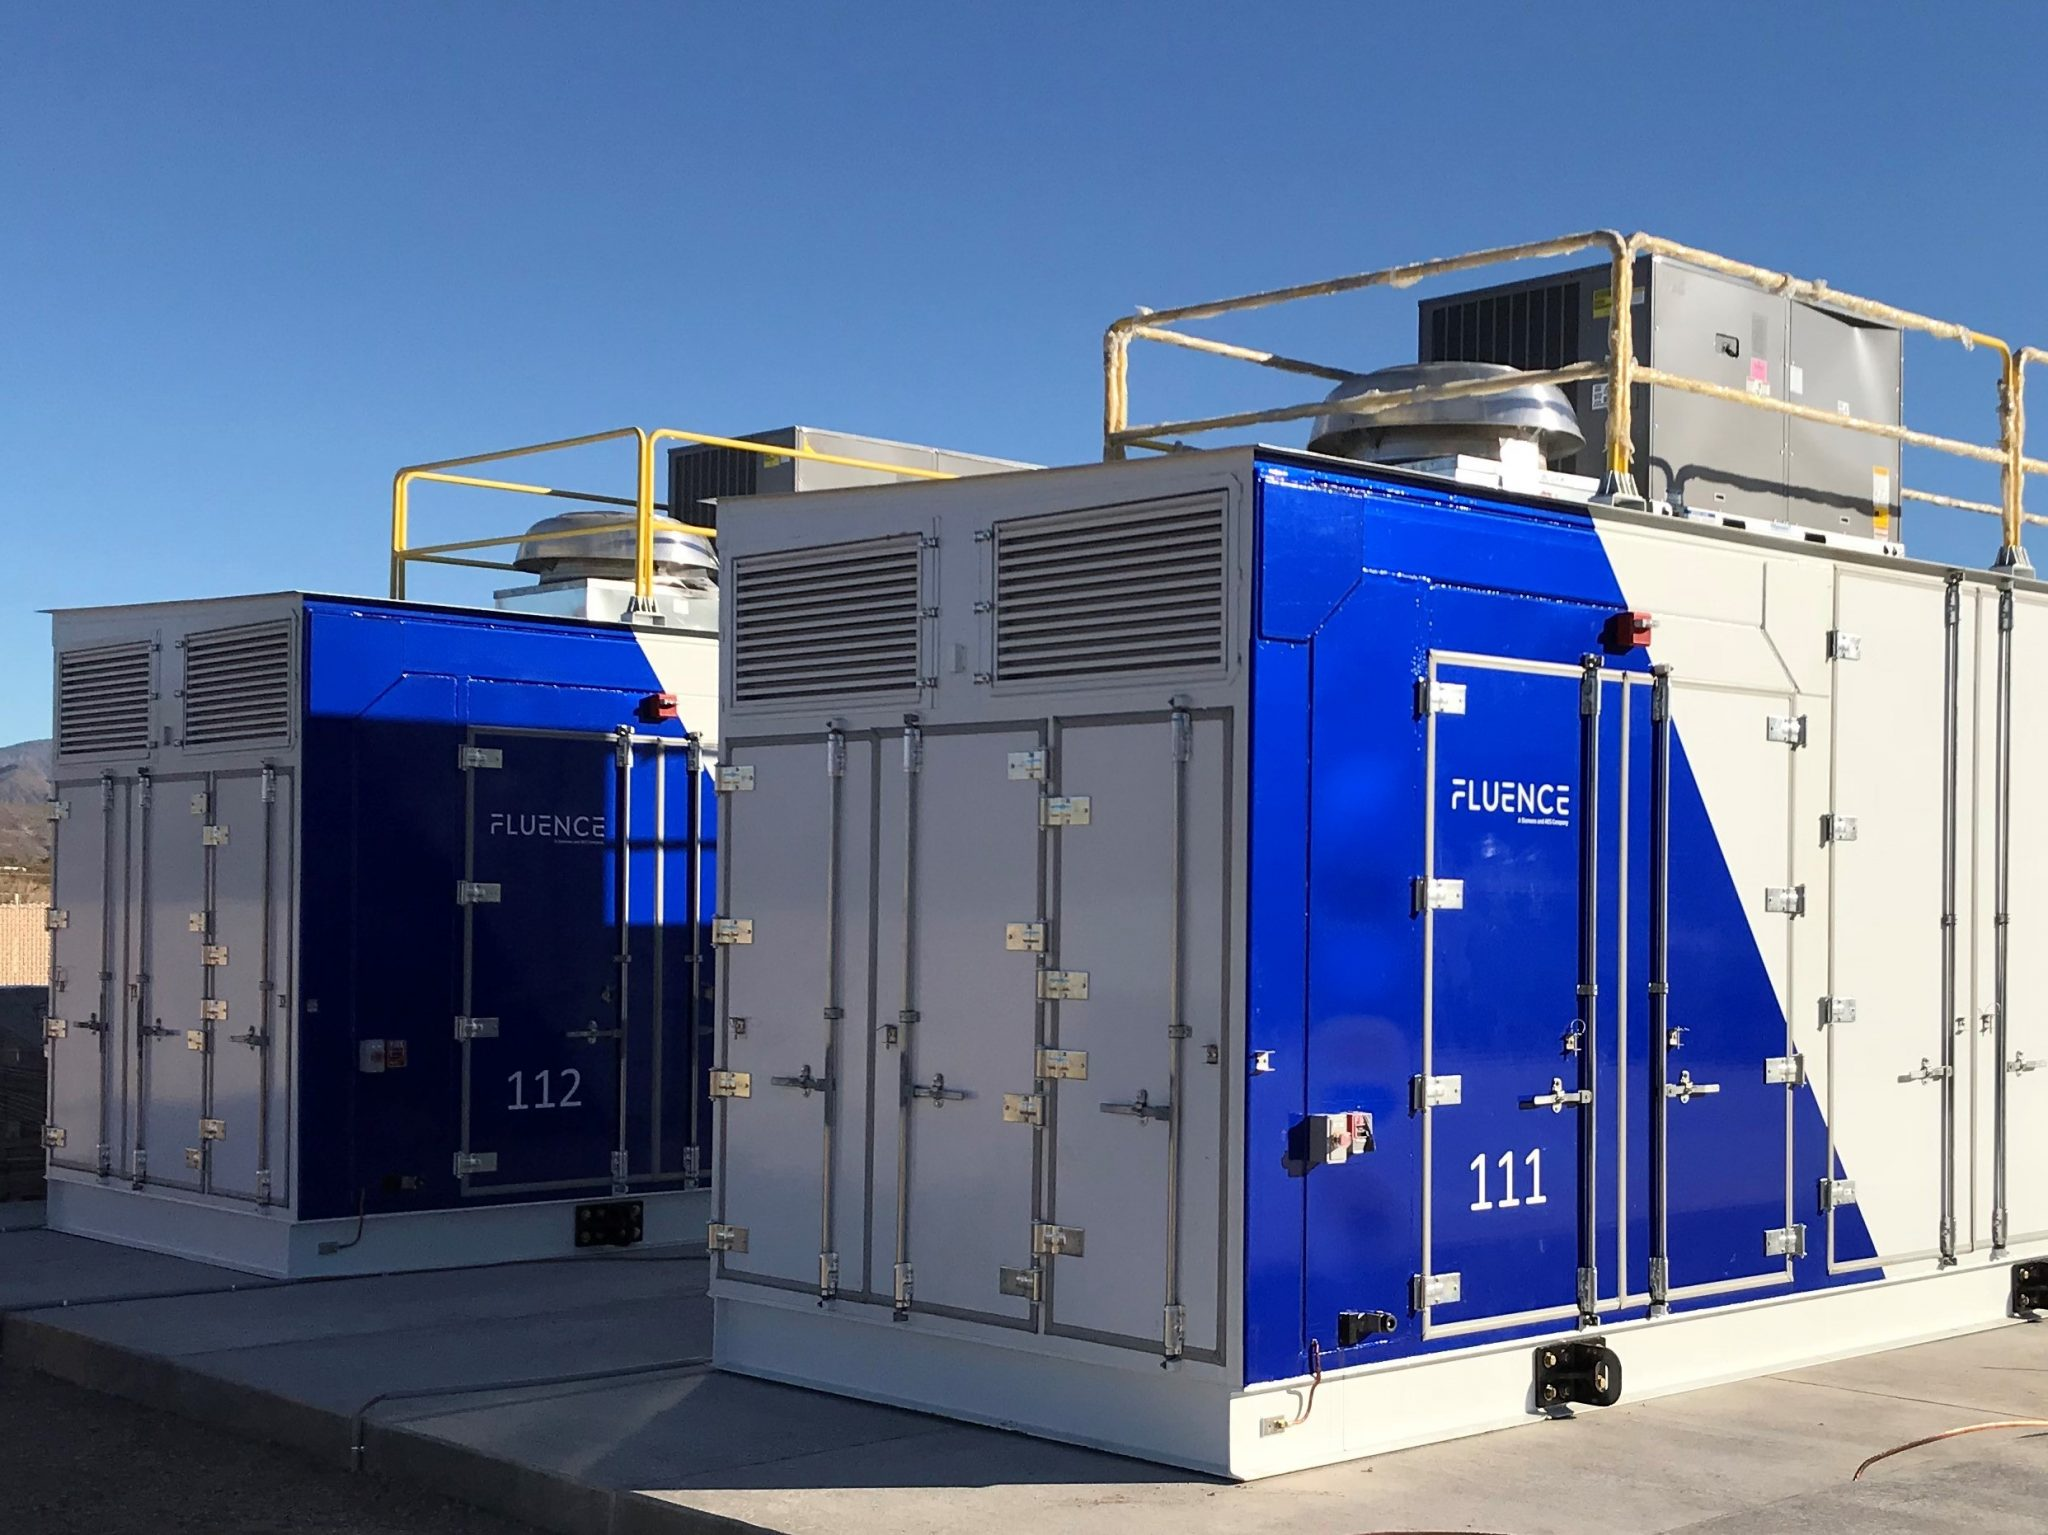 APS Punkin Center energy storage